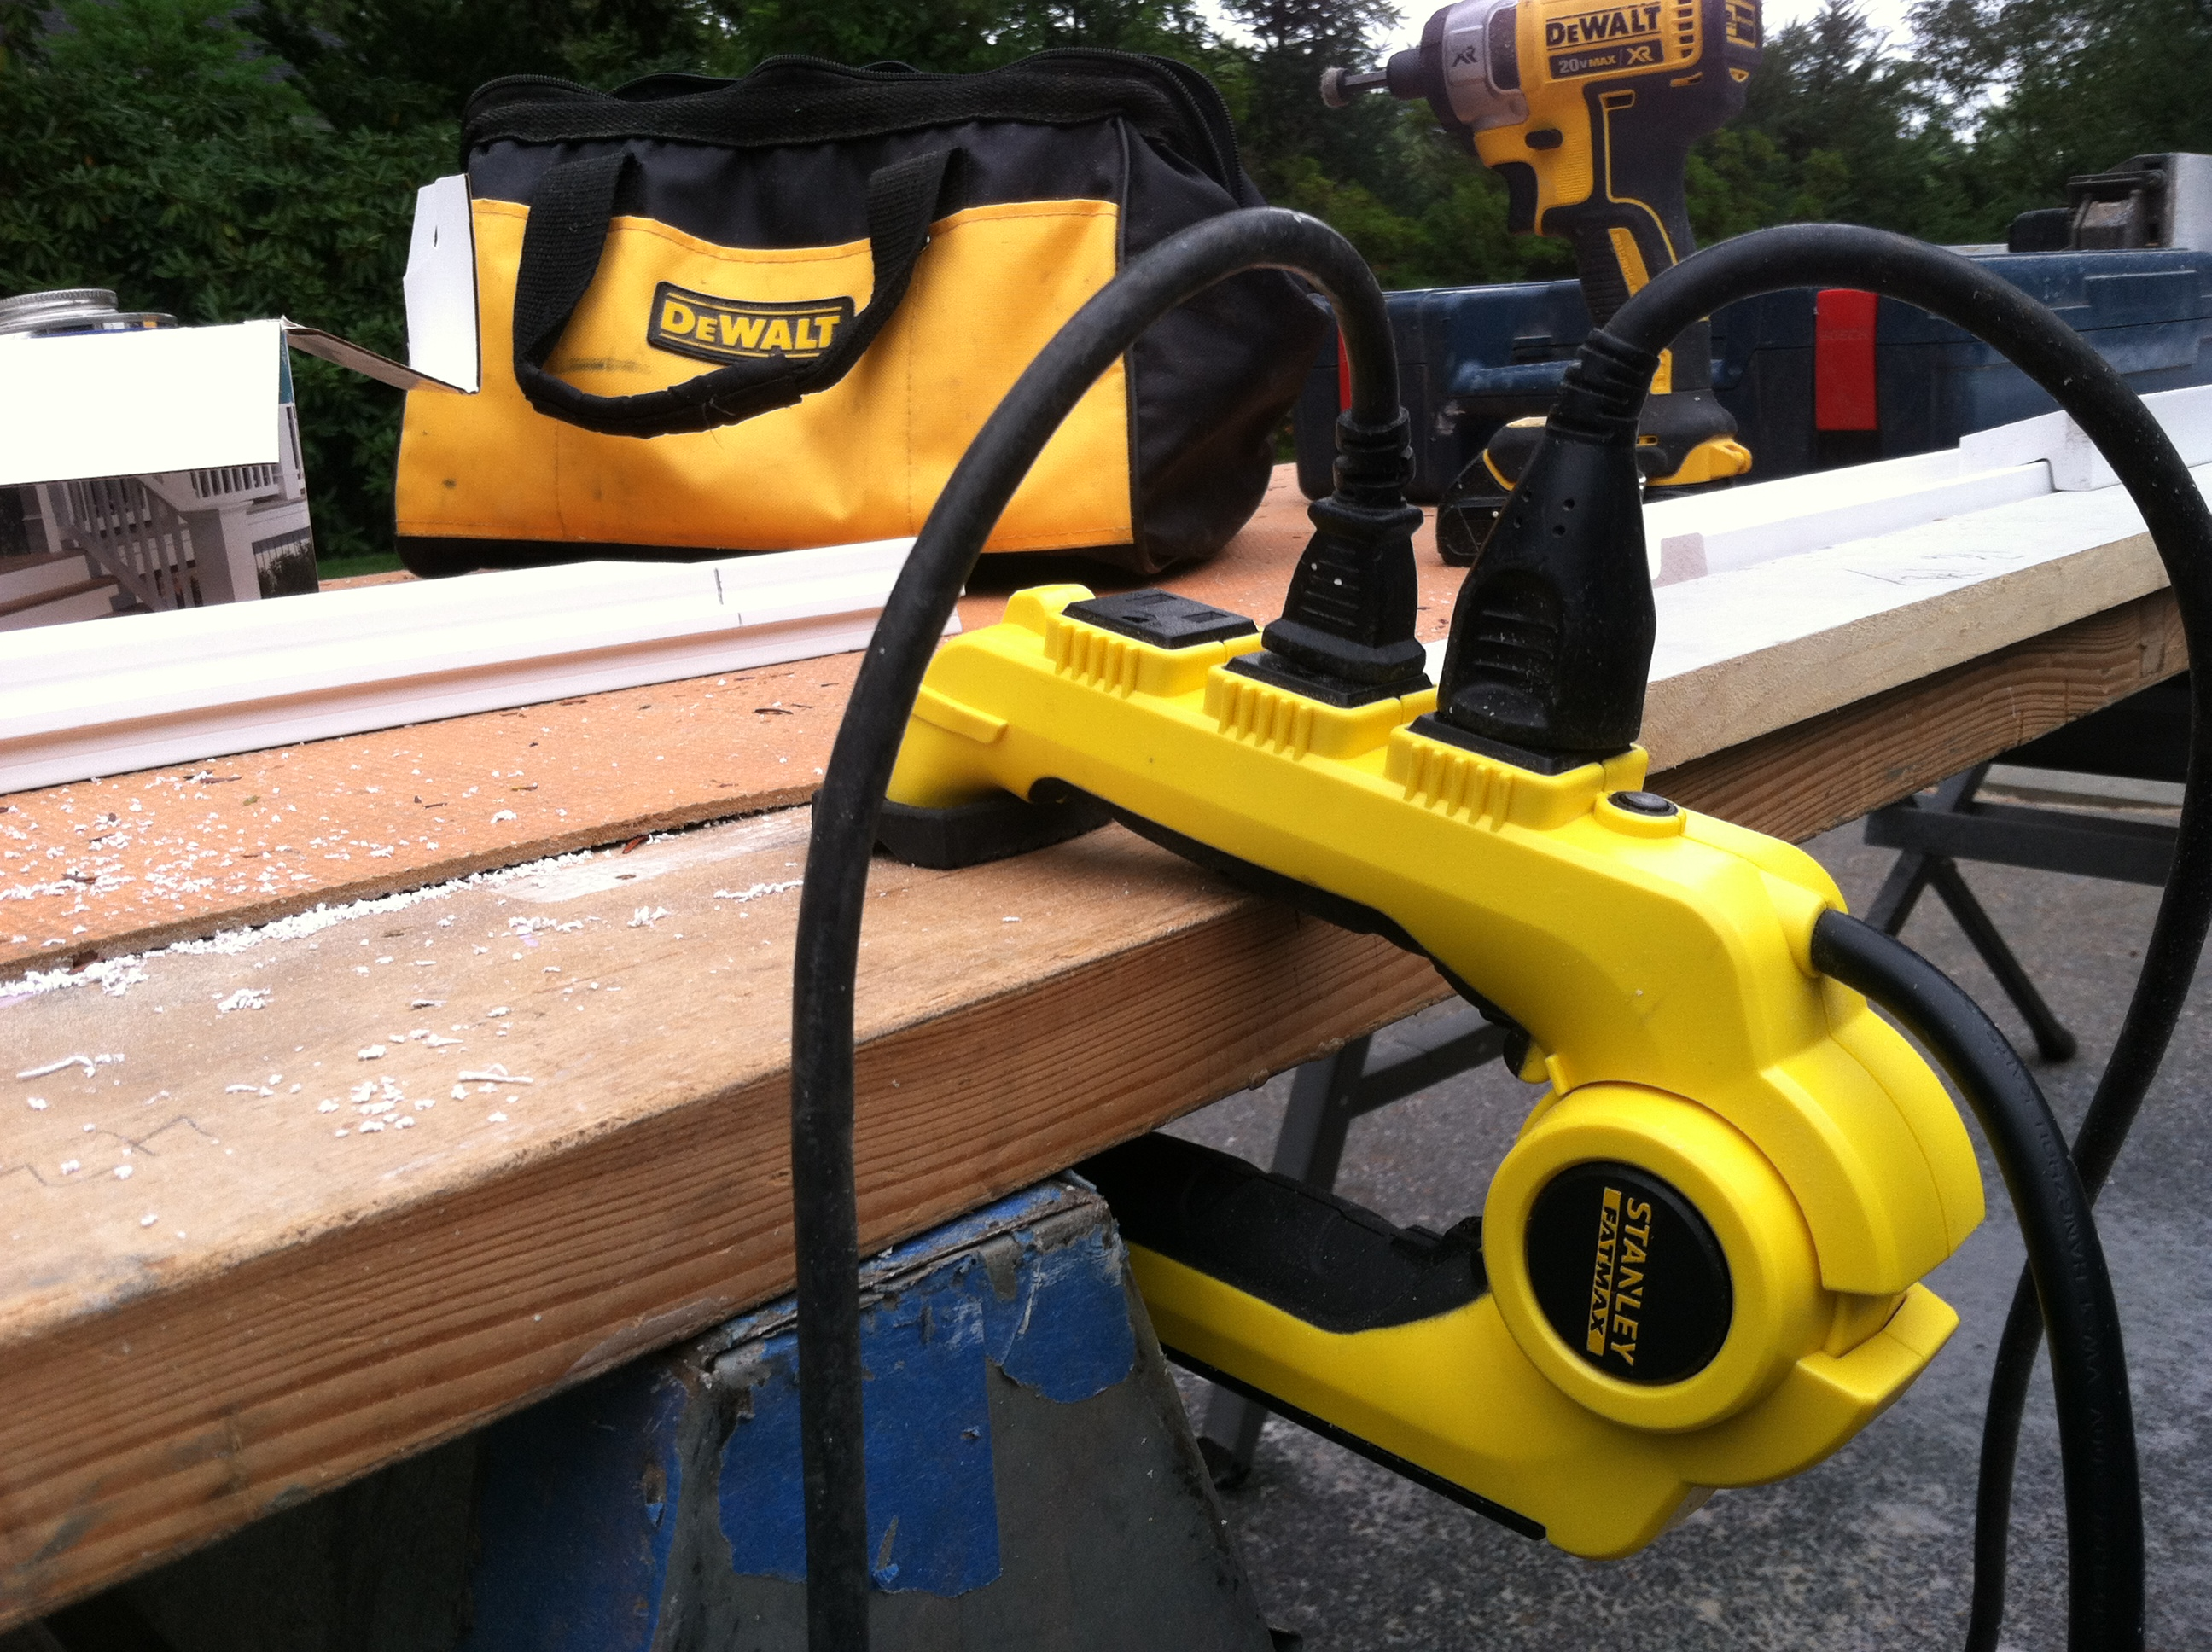 stanley fatmax powerclaw a concord carpenter tool review. Black Bedroom Furniture Sets. Home Design Ideas